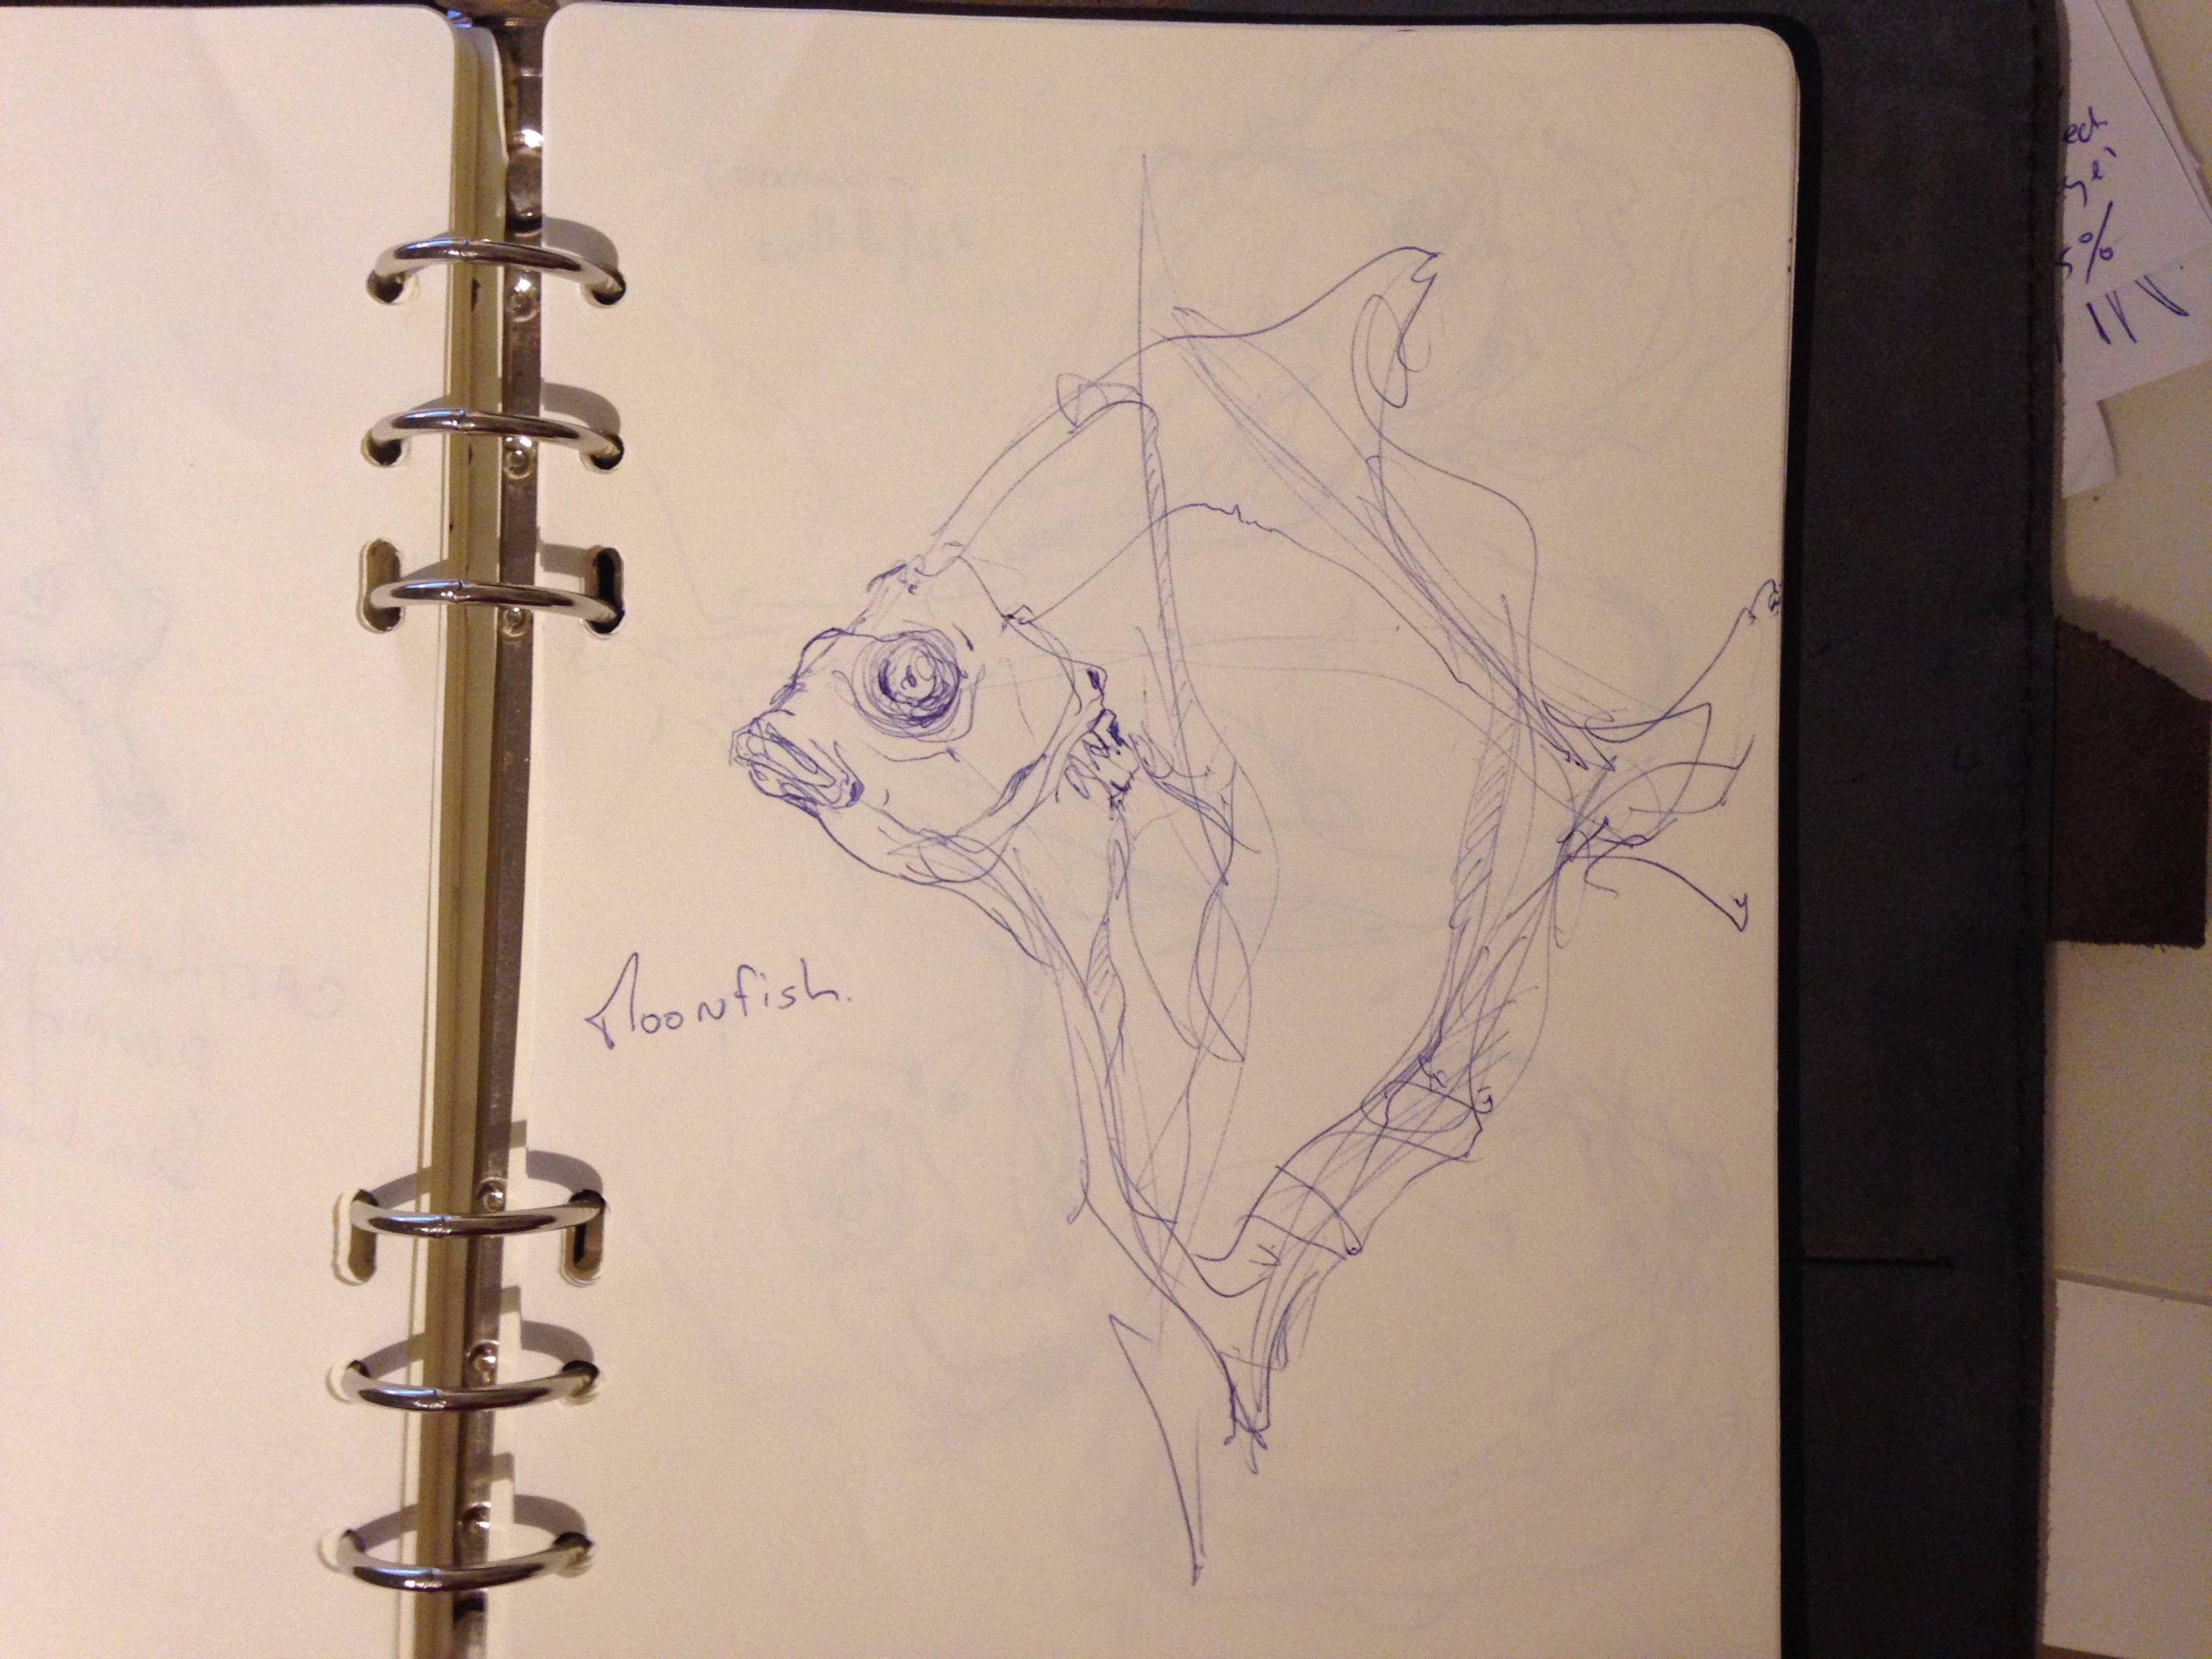 the design sketchbook sketch boston acquarium fish drawing ball point pen blue bic Moonfish